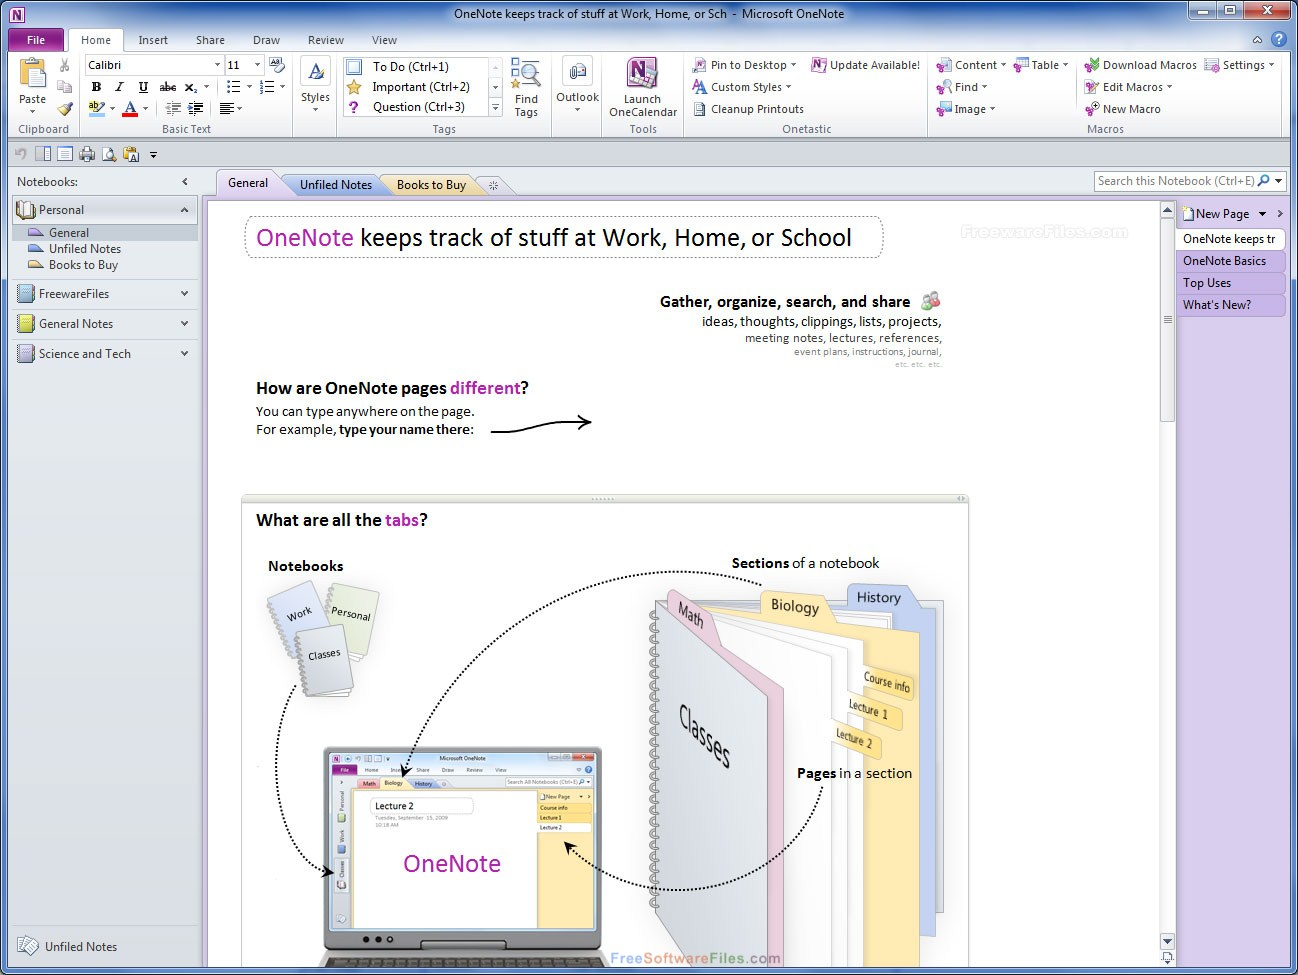 Microsoft OneNote 2016 Free Download latest version v16